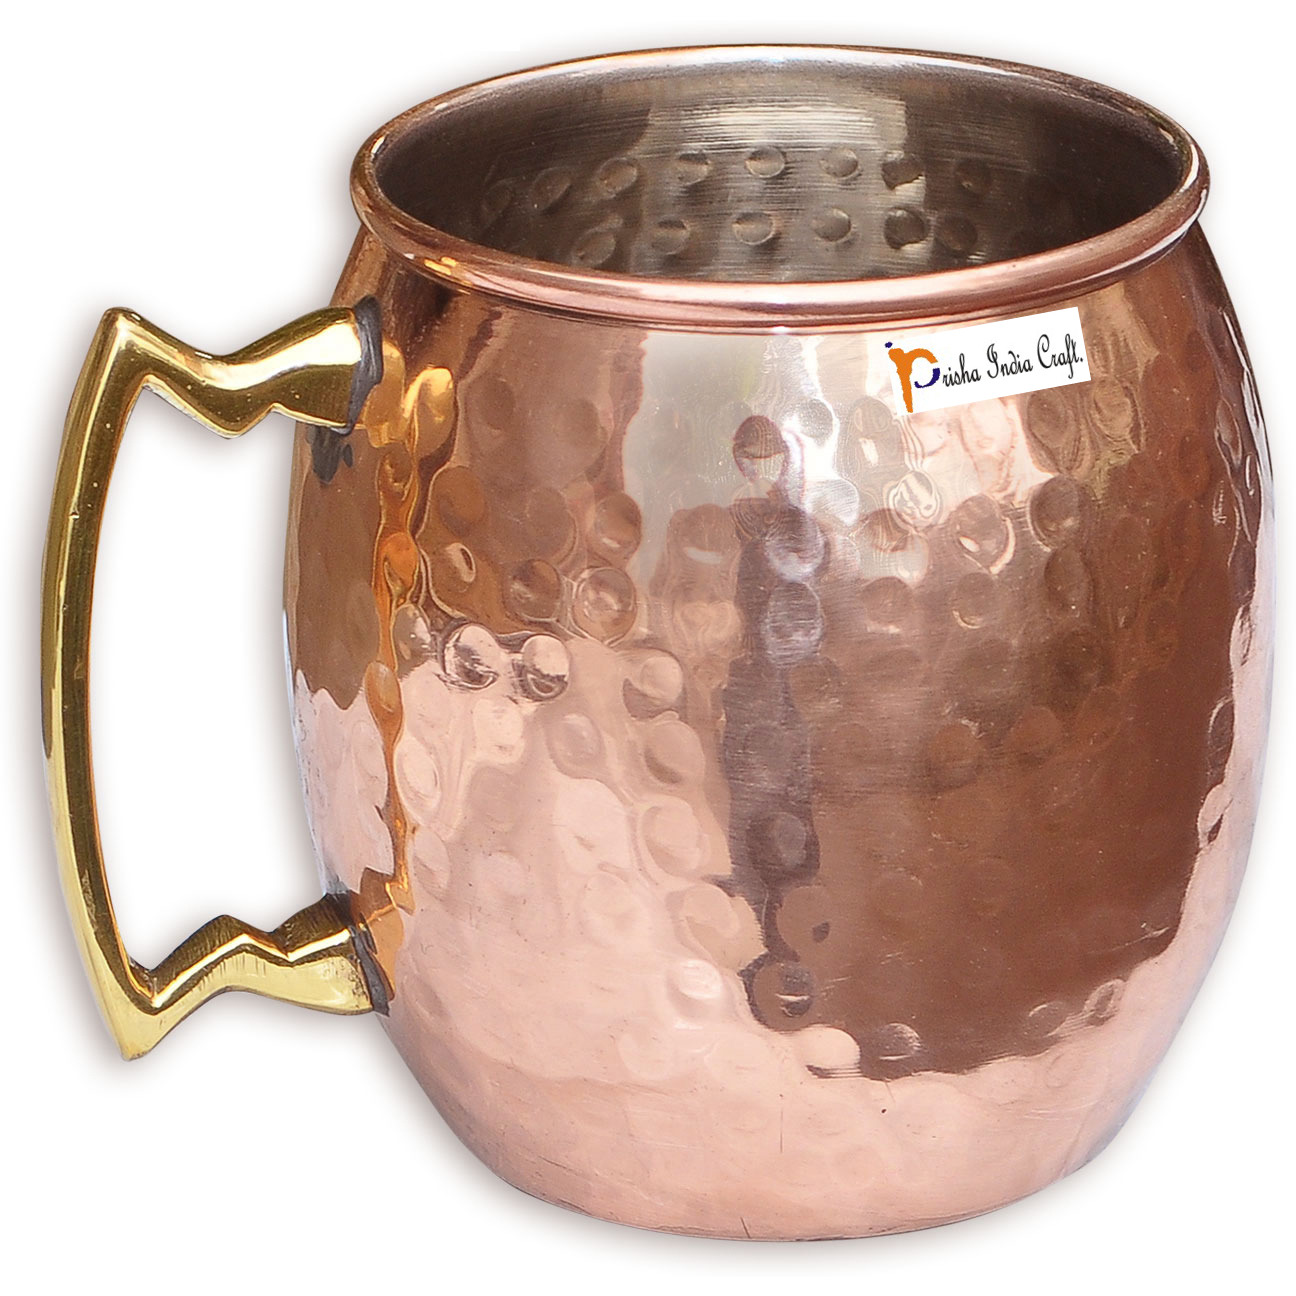 Set of 8 - Prisha India Craft B. Copper Mug for Moscow Mules 560 ML / 18 oz Inside Nickle Hammered Best Quality Lacquered Finish Mule Cup, Moscow Mule Cocktail Cup, Copper Mugs, Cocktail Mugs